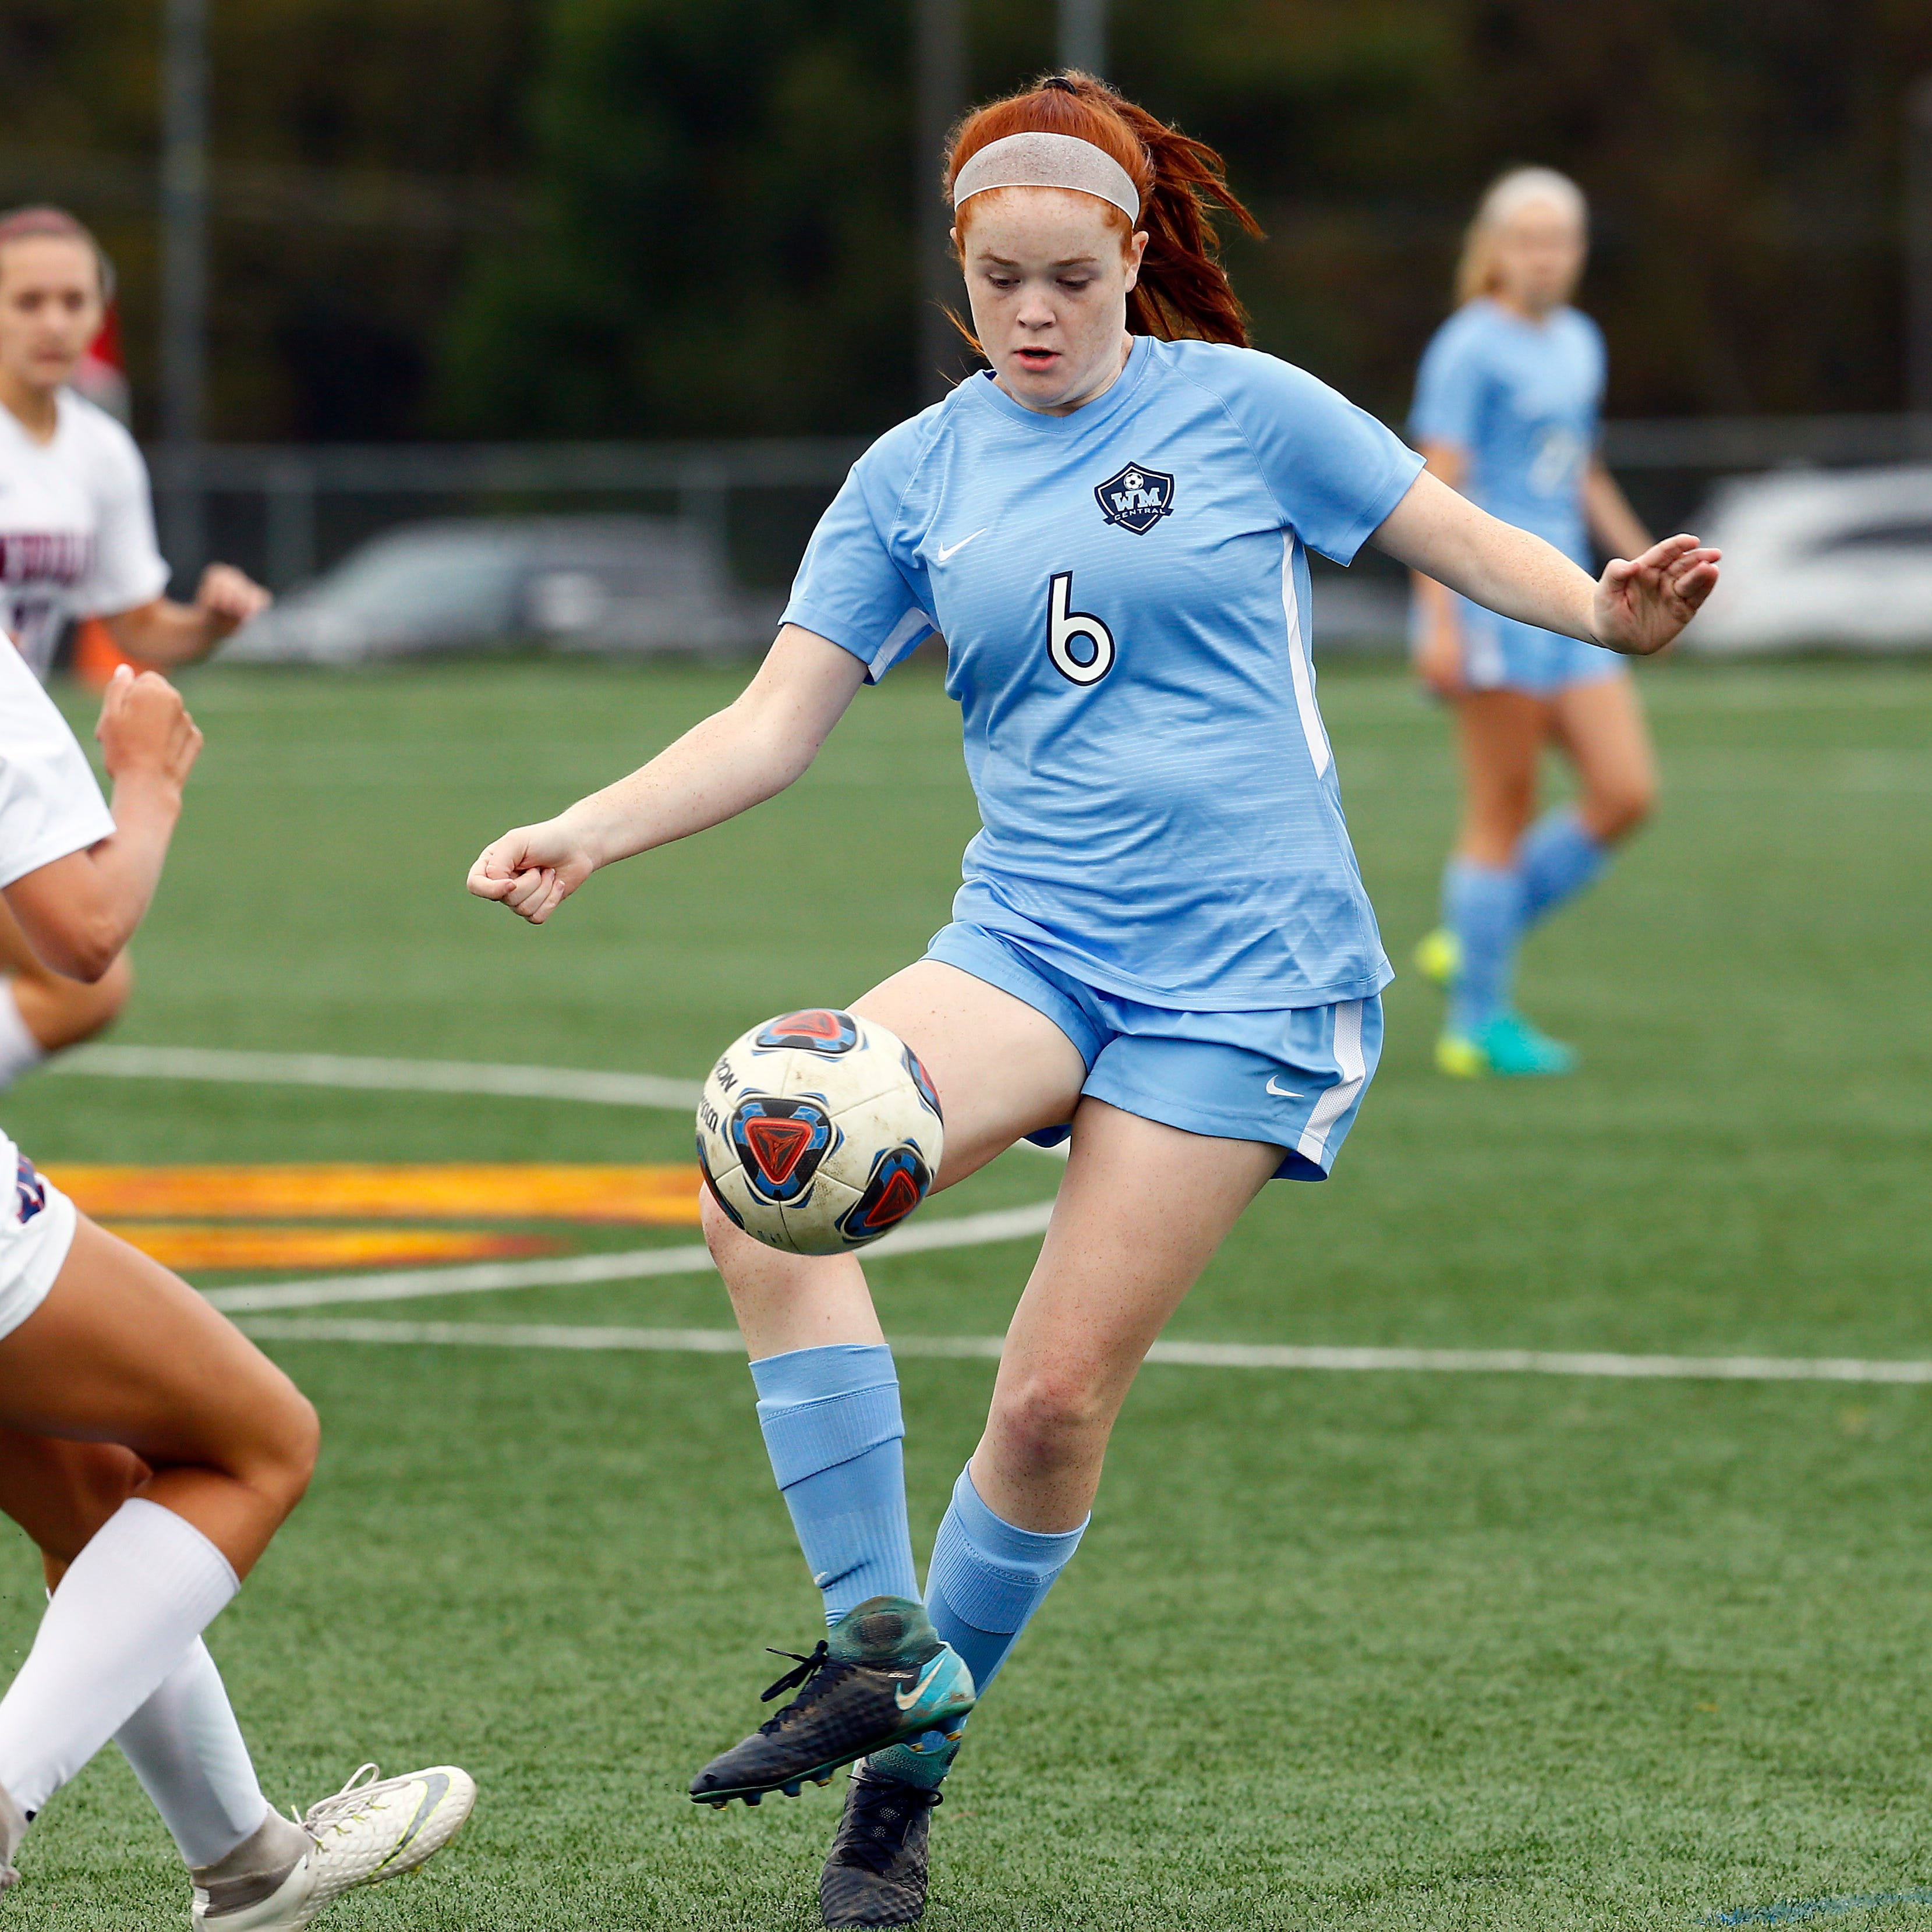 West Morris girls soccer receives top MCT seed